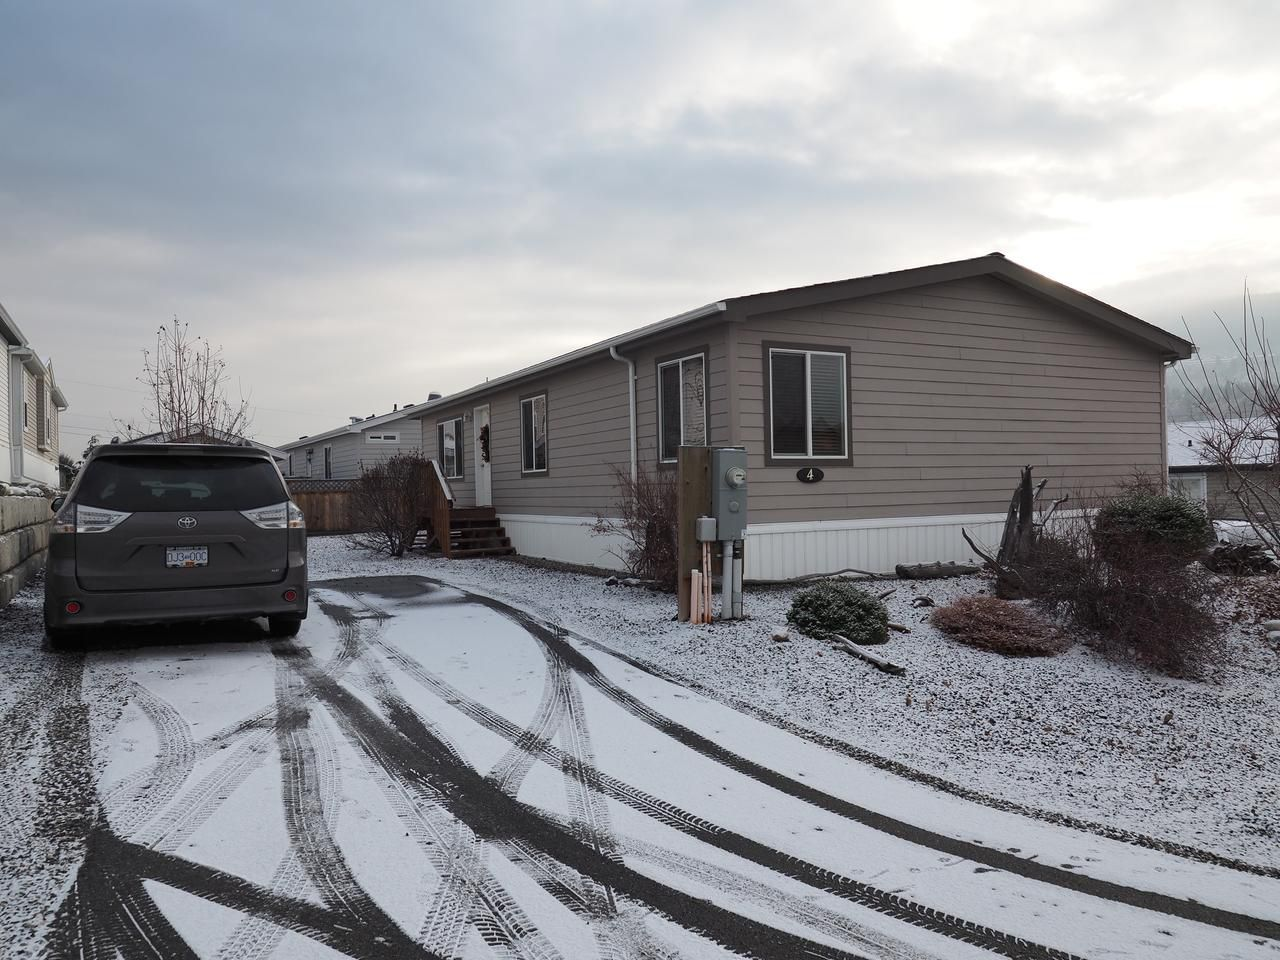 Main Photo: 4 768 E SHUSWAP ROAD in : South Thompson Valley Manufactured Home/Prefab for sale (Kamloops)  : MLS®# 143720